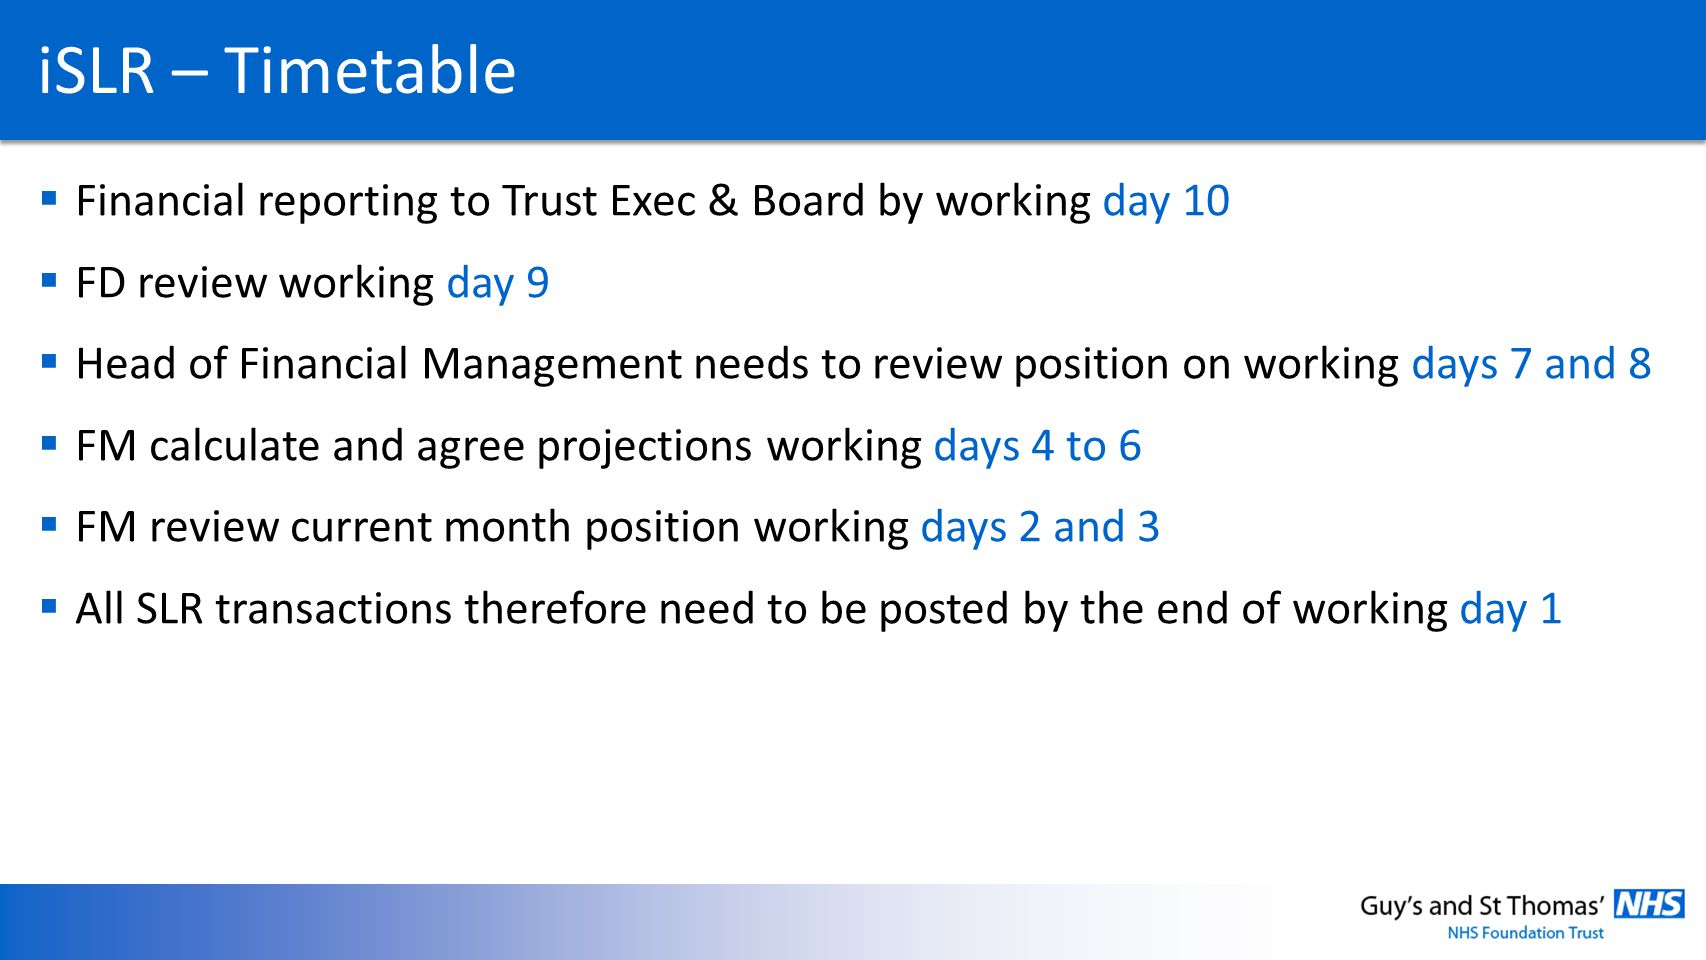 iSLR – Timetable Financial reporting to Trust Exec & Board by working day 10. FD review working day 9.